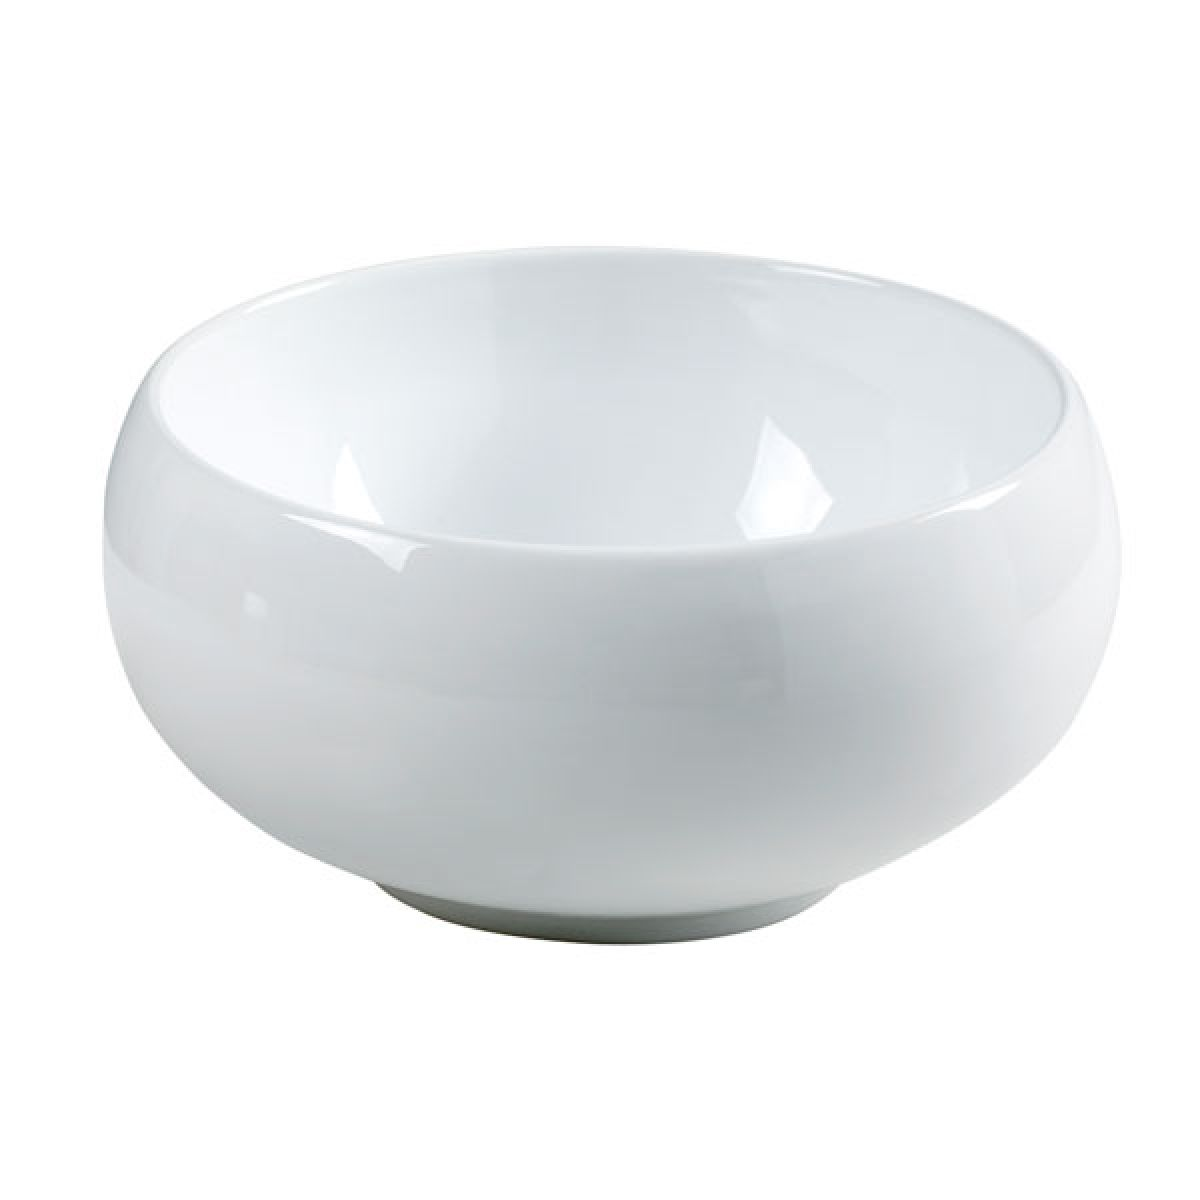 Poco Small Countertop Basin